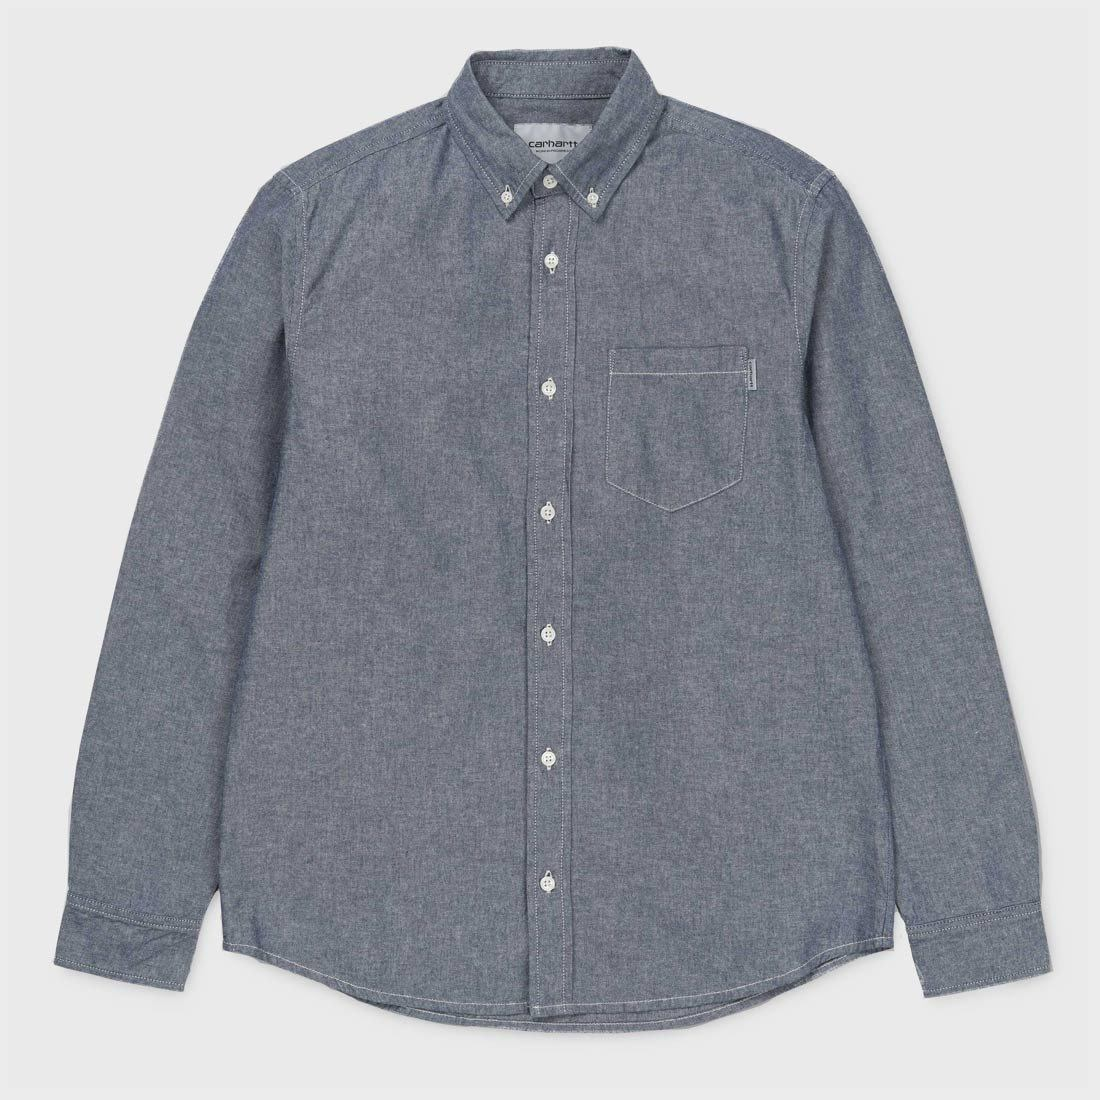 Carhartt WIP L/S Civil Shirt Blue Rinsed